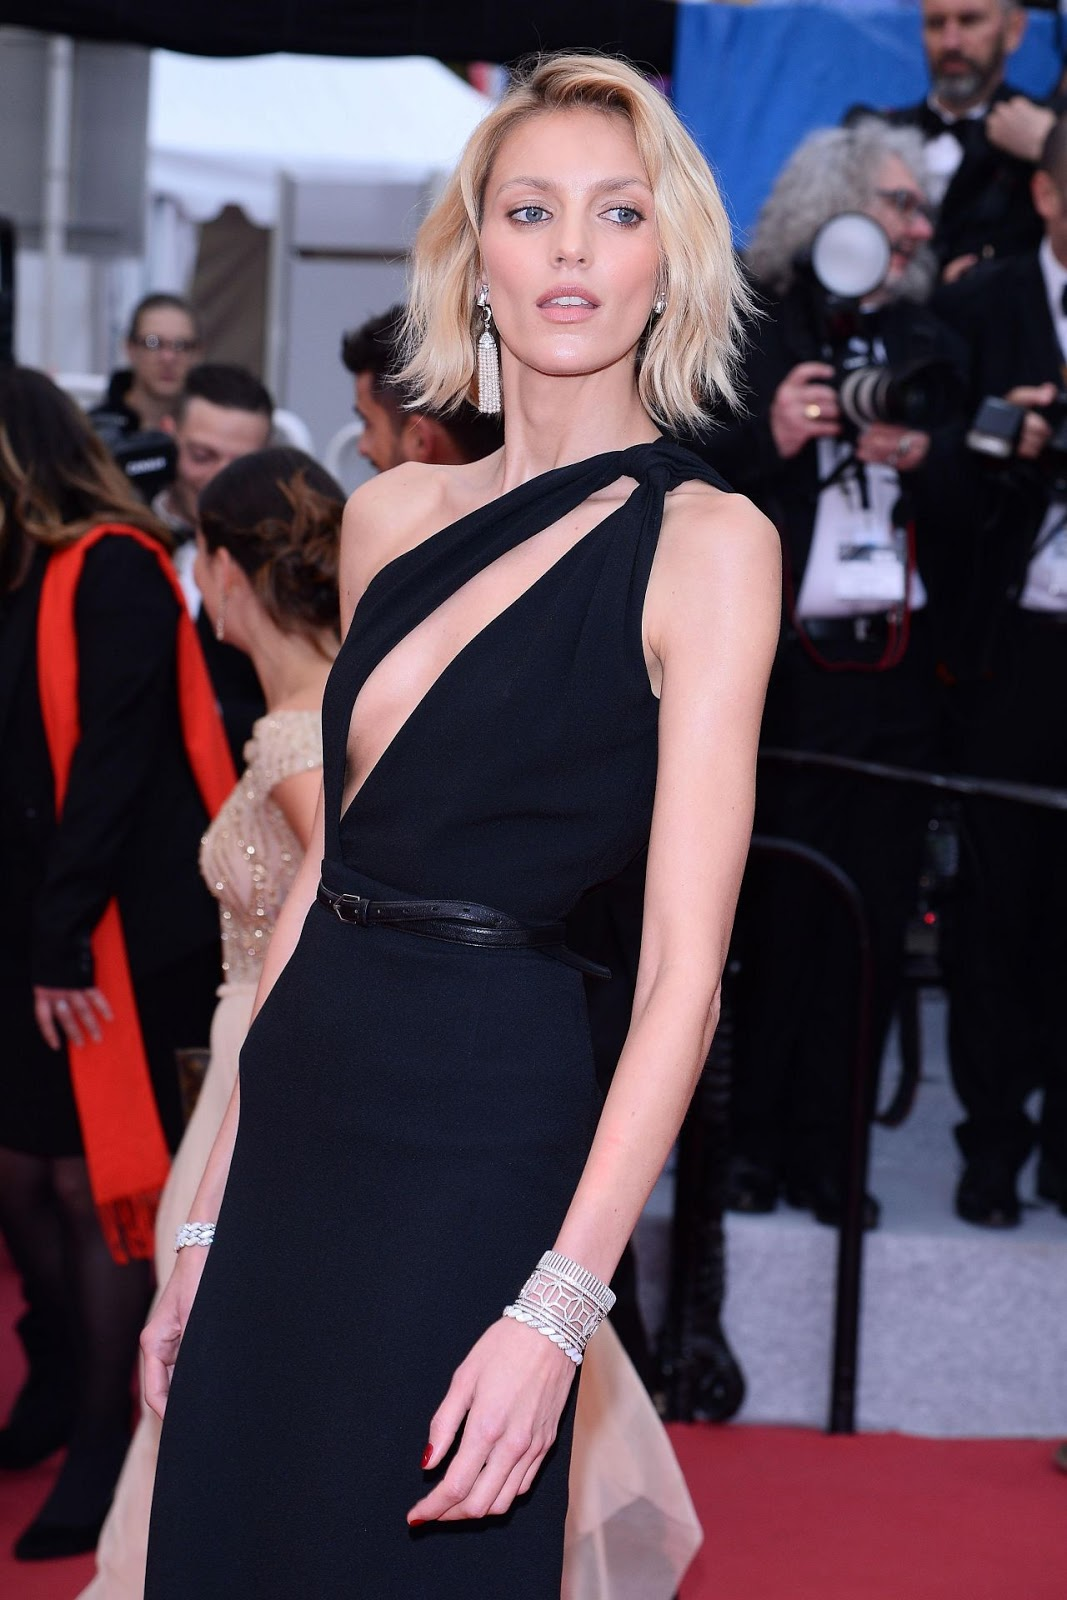 Anja Rubik Hot Red Carpet Pics - Anja Rubik Hot Red Carpet Pics